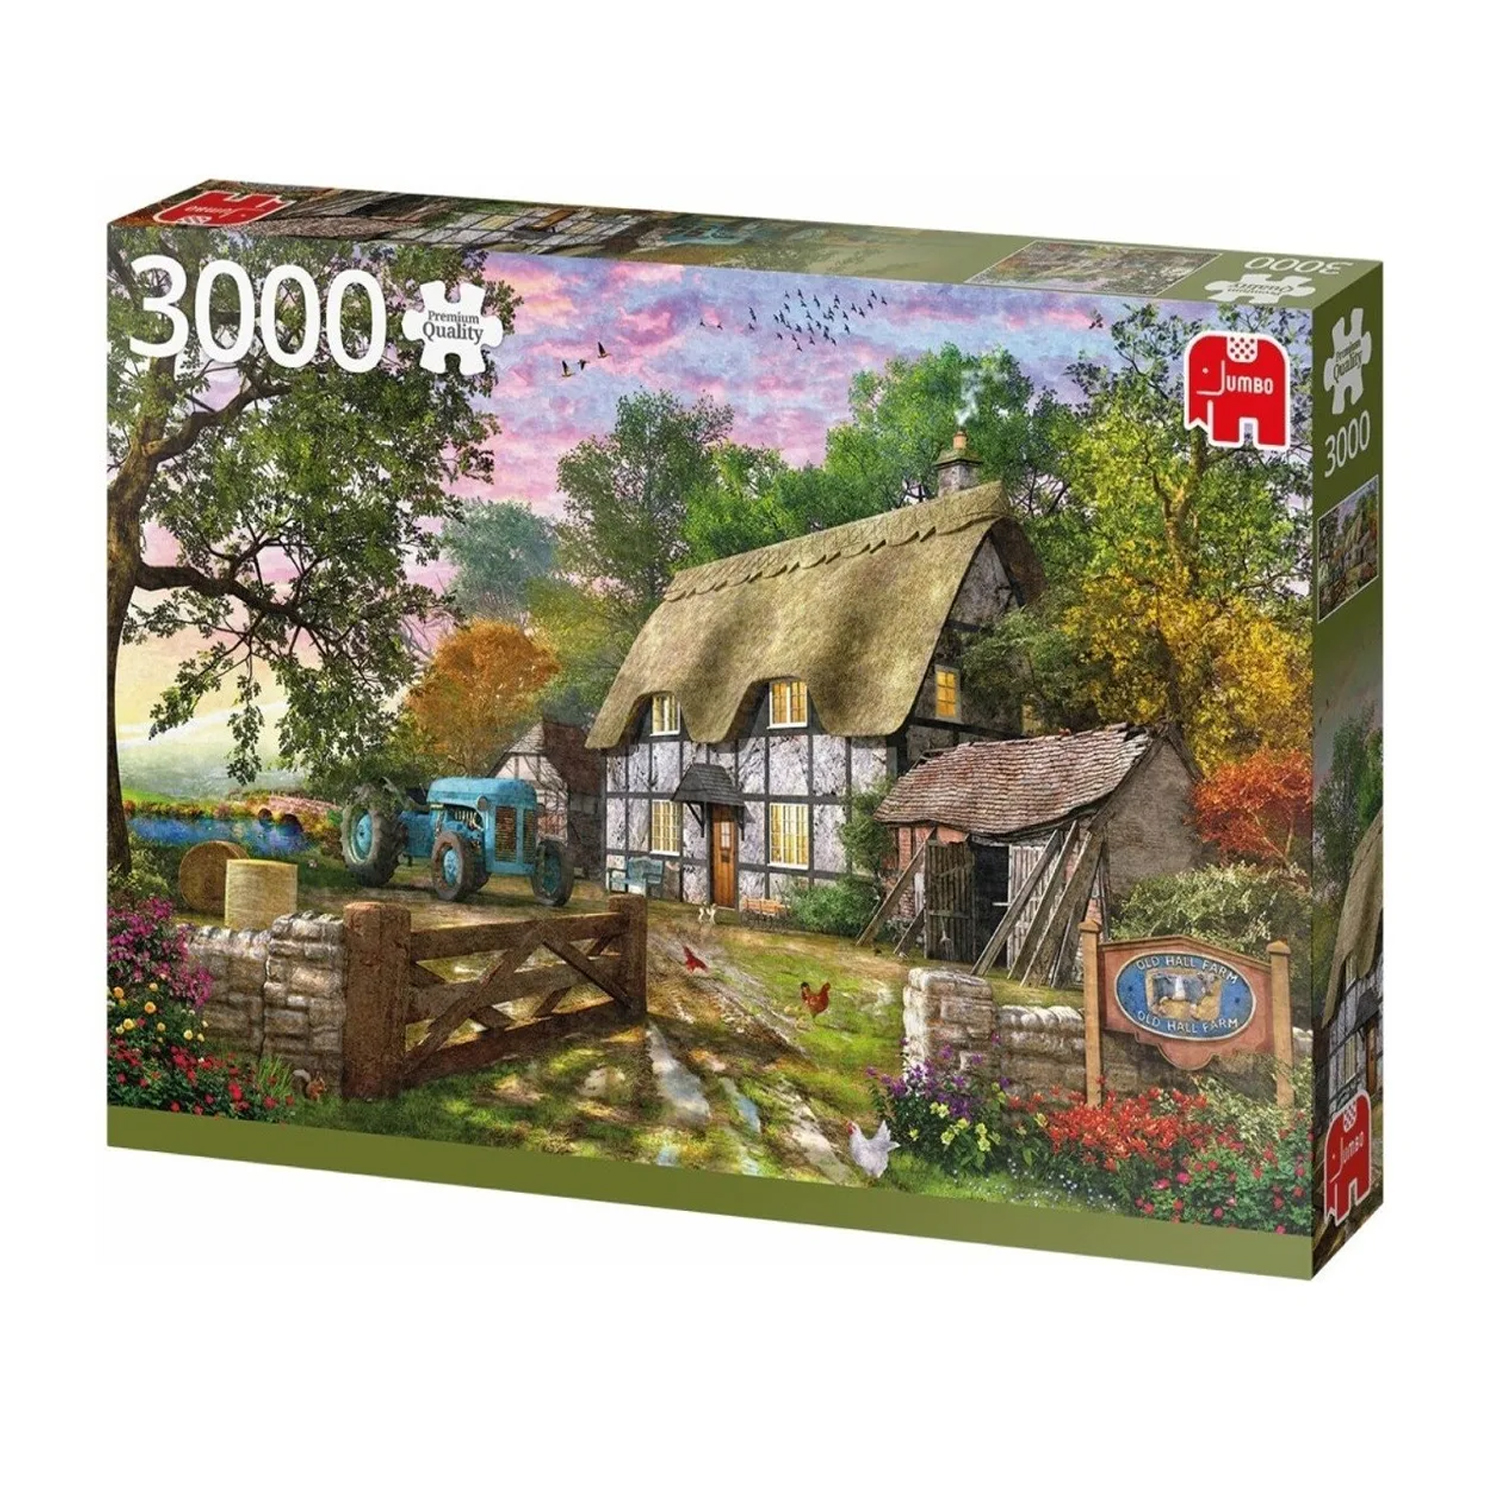 Cuy Games - 3000 PIEZAS - THE FARMERS COTTAGE -